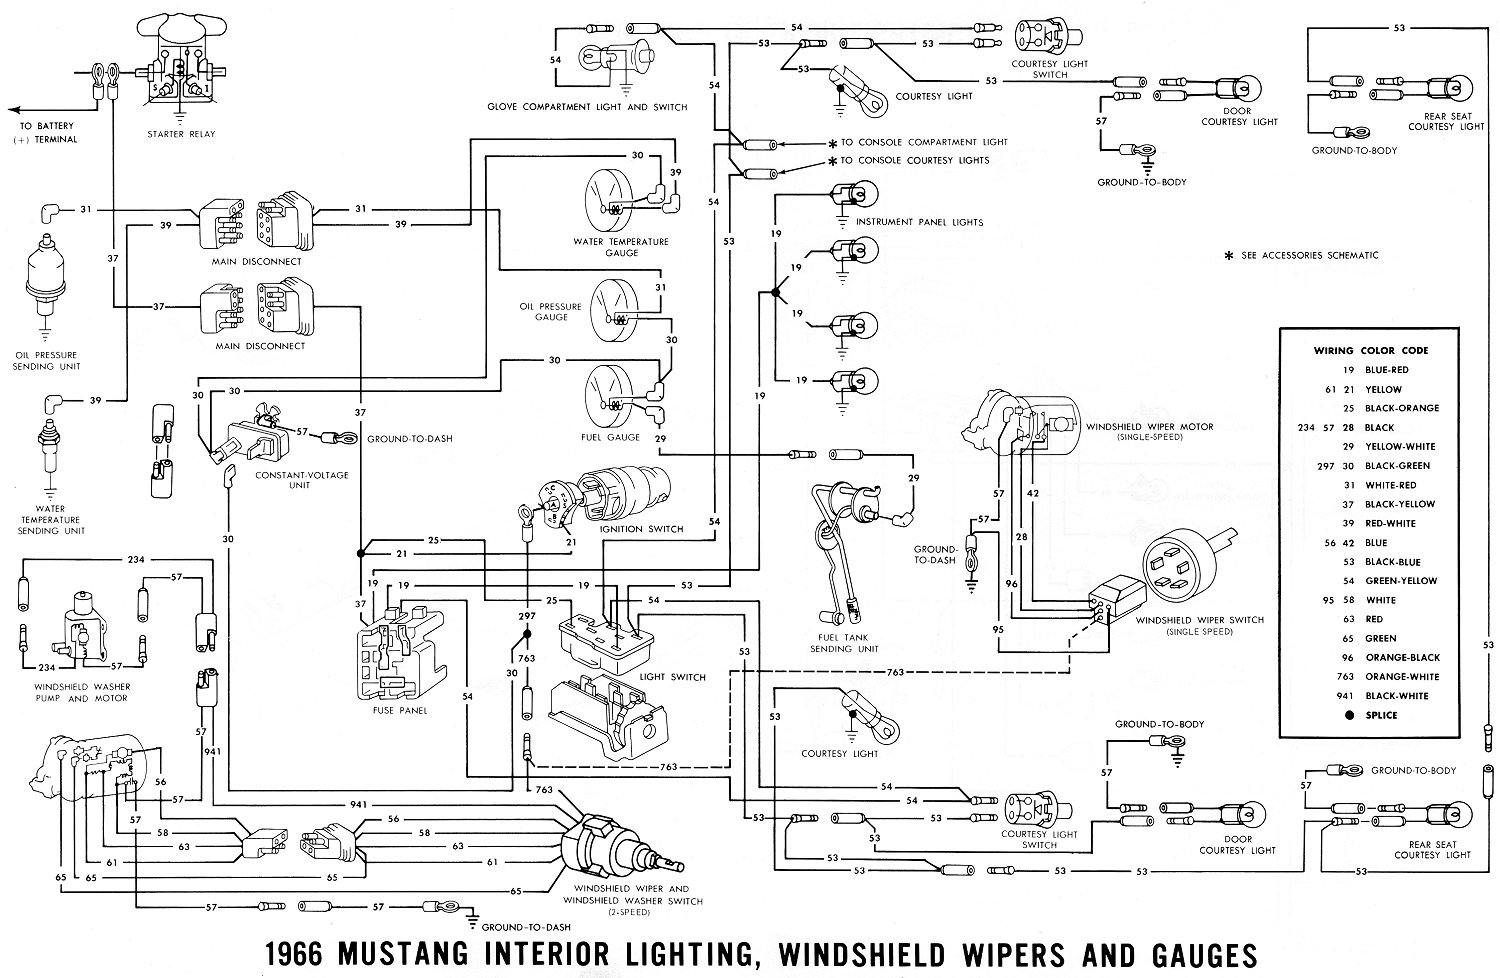 66inter1 1966 mustang wiring diagram 1966 mustang ignition wiring diagram 1965 ford mustang wiring diagrams at panicattacktreatment.co